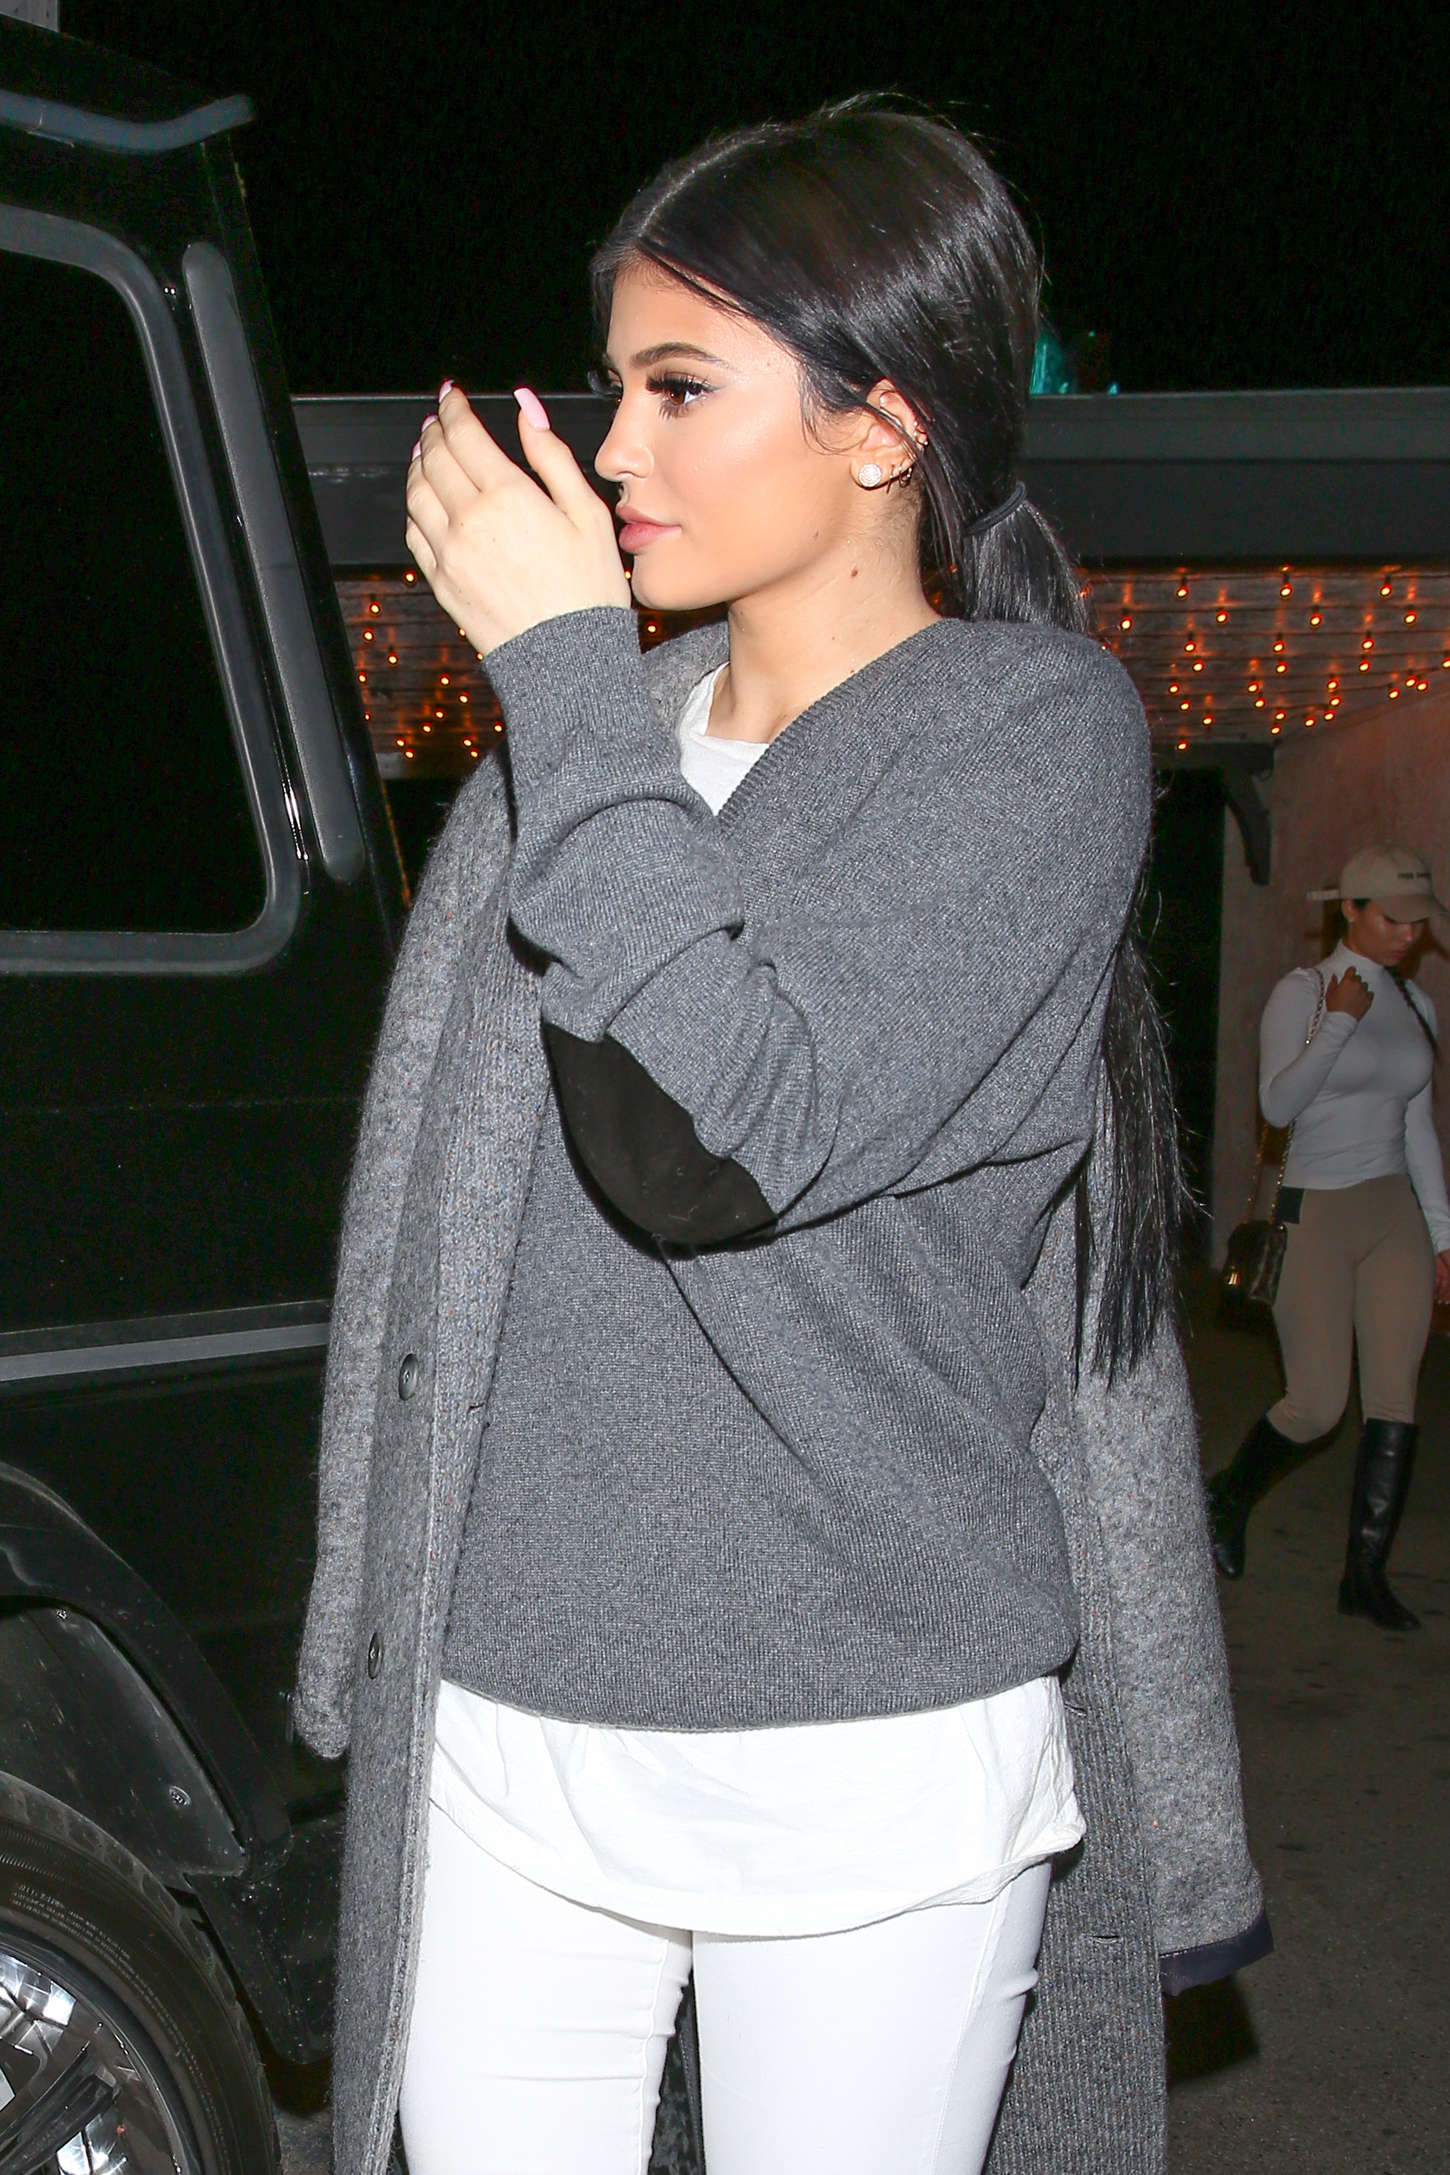 kylie jenner out for dinner with friends in la